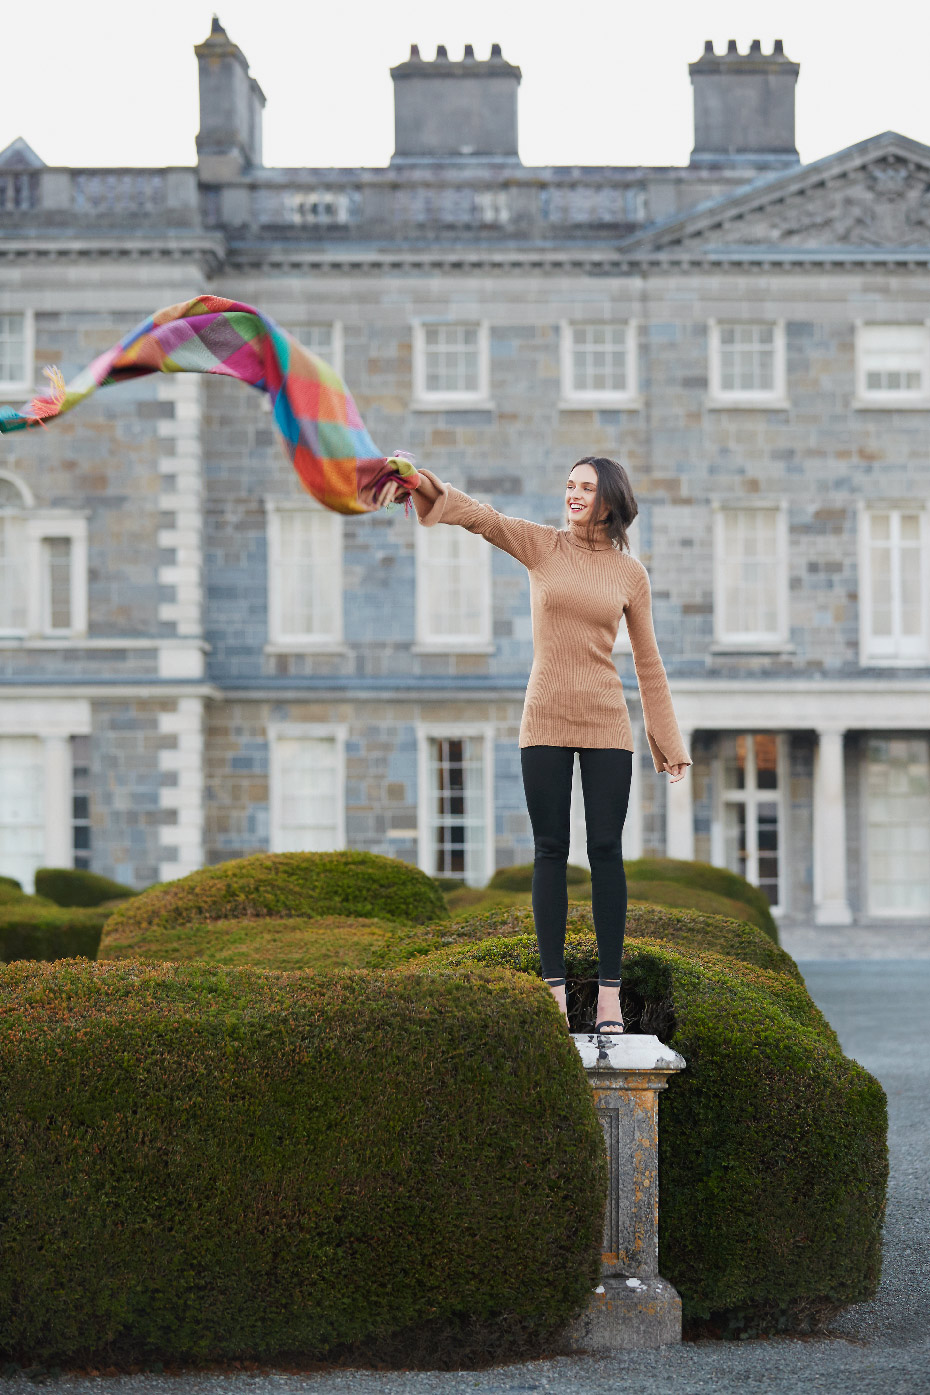 Stacey Van Berkel Photography I Carton House Travel Fashion Shoot I Avoca Ireland Blanket I Kildare, Ireland